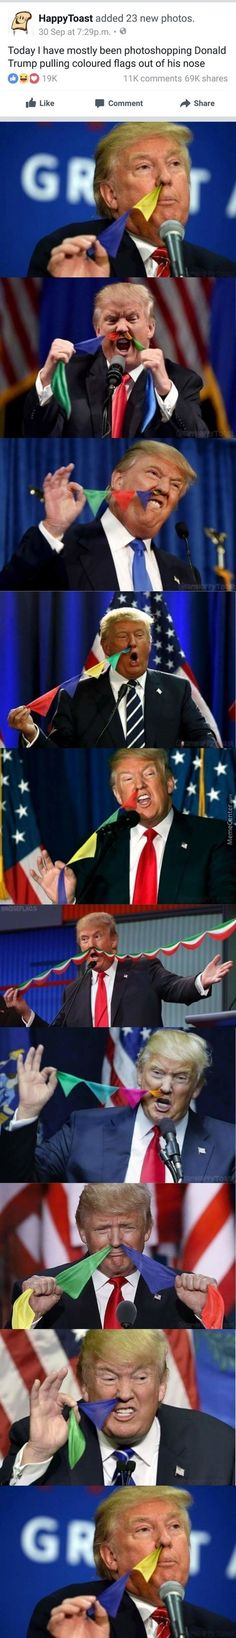 Trump Pulling Colored Flags Out Of His Nose.looks painful Haha Funny, Hilarious, Funny Stuff, Funny Quotes, Funny Memes, Jokes, Just For Laughs, Tumblr Funny, Funny Posts